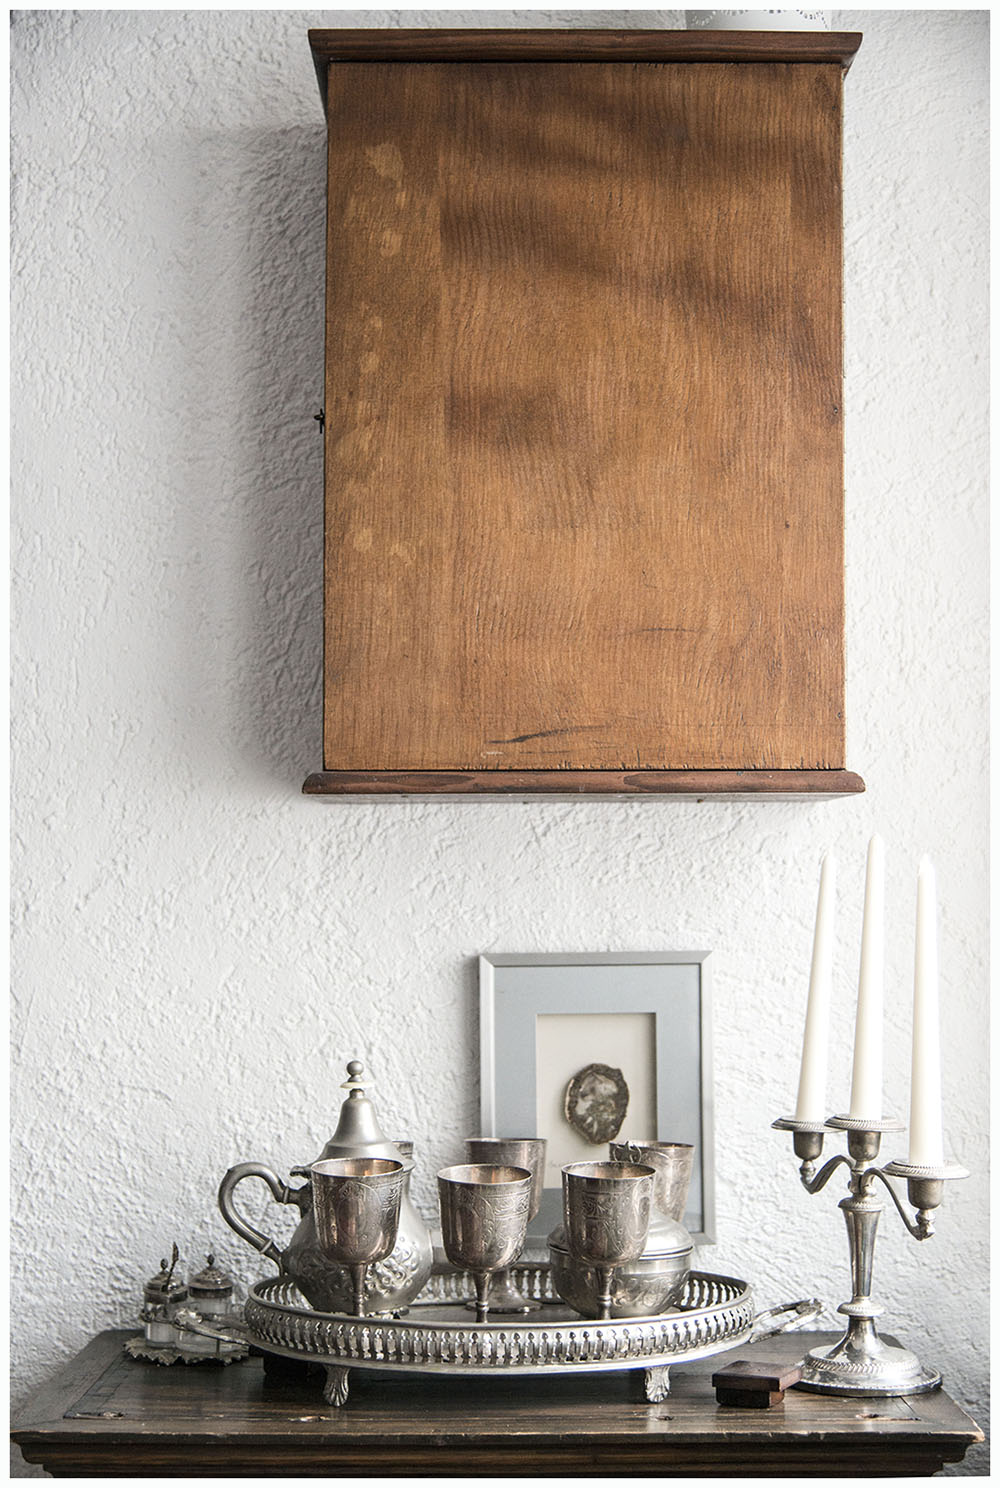 silver tray and goblets